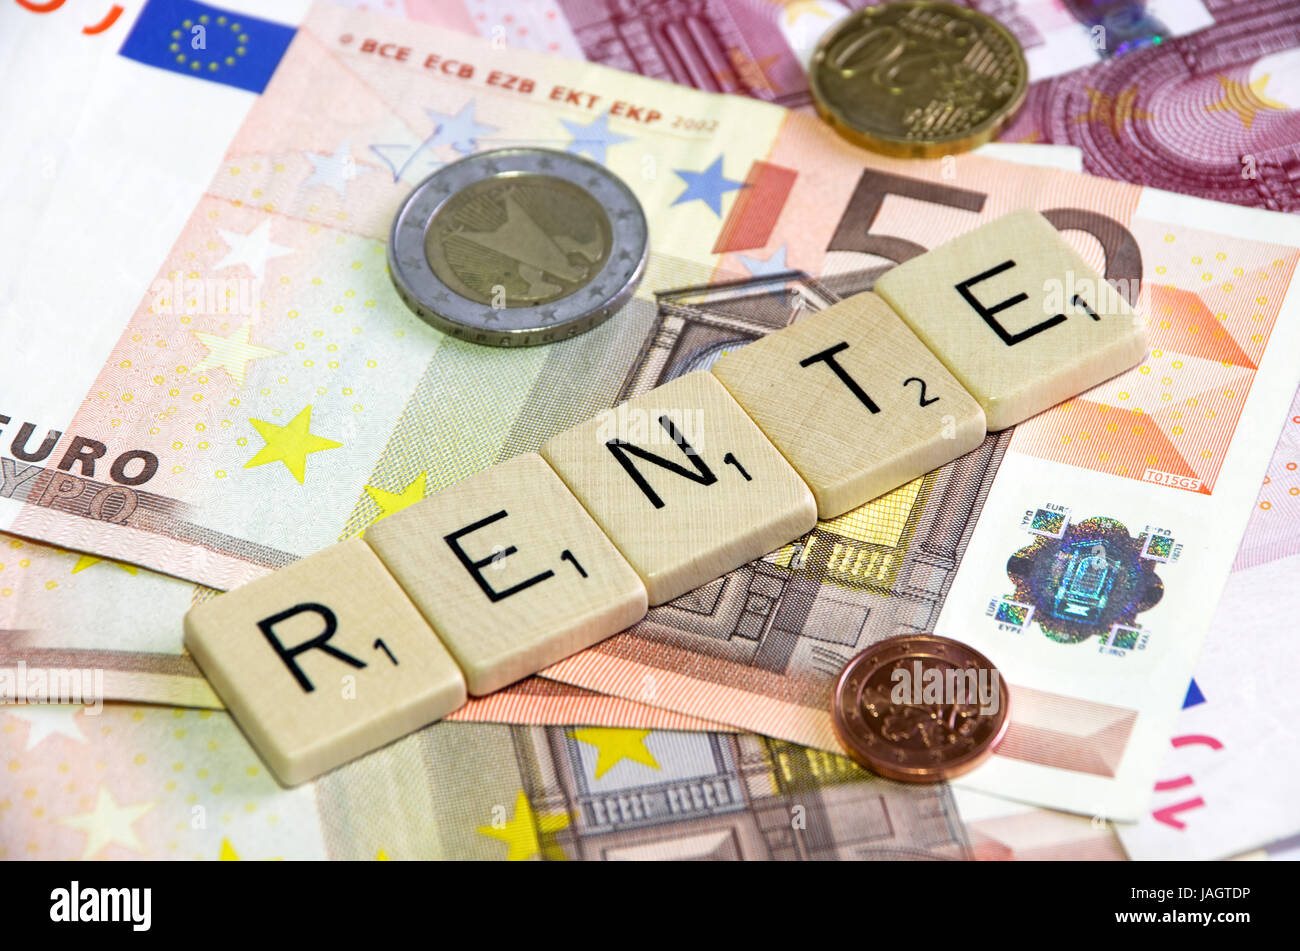 german word rente on banknotes and change Stock Photo